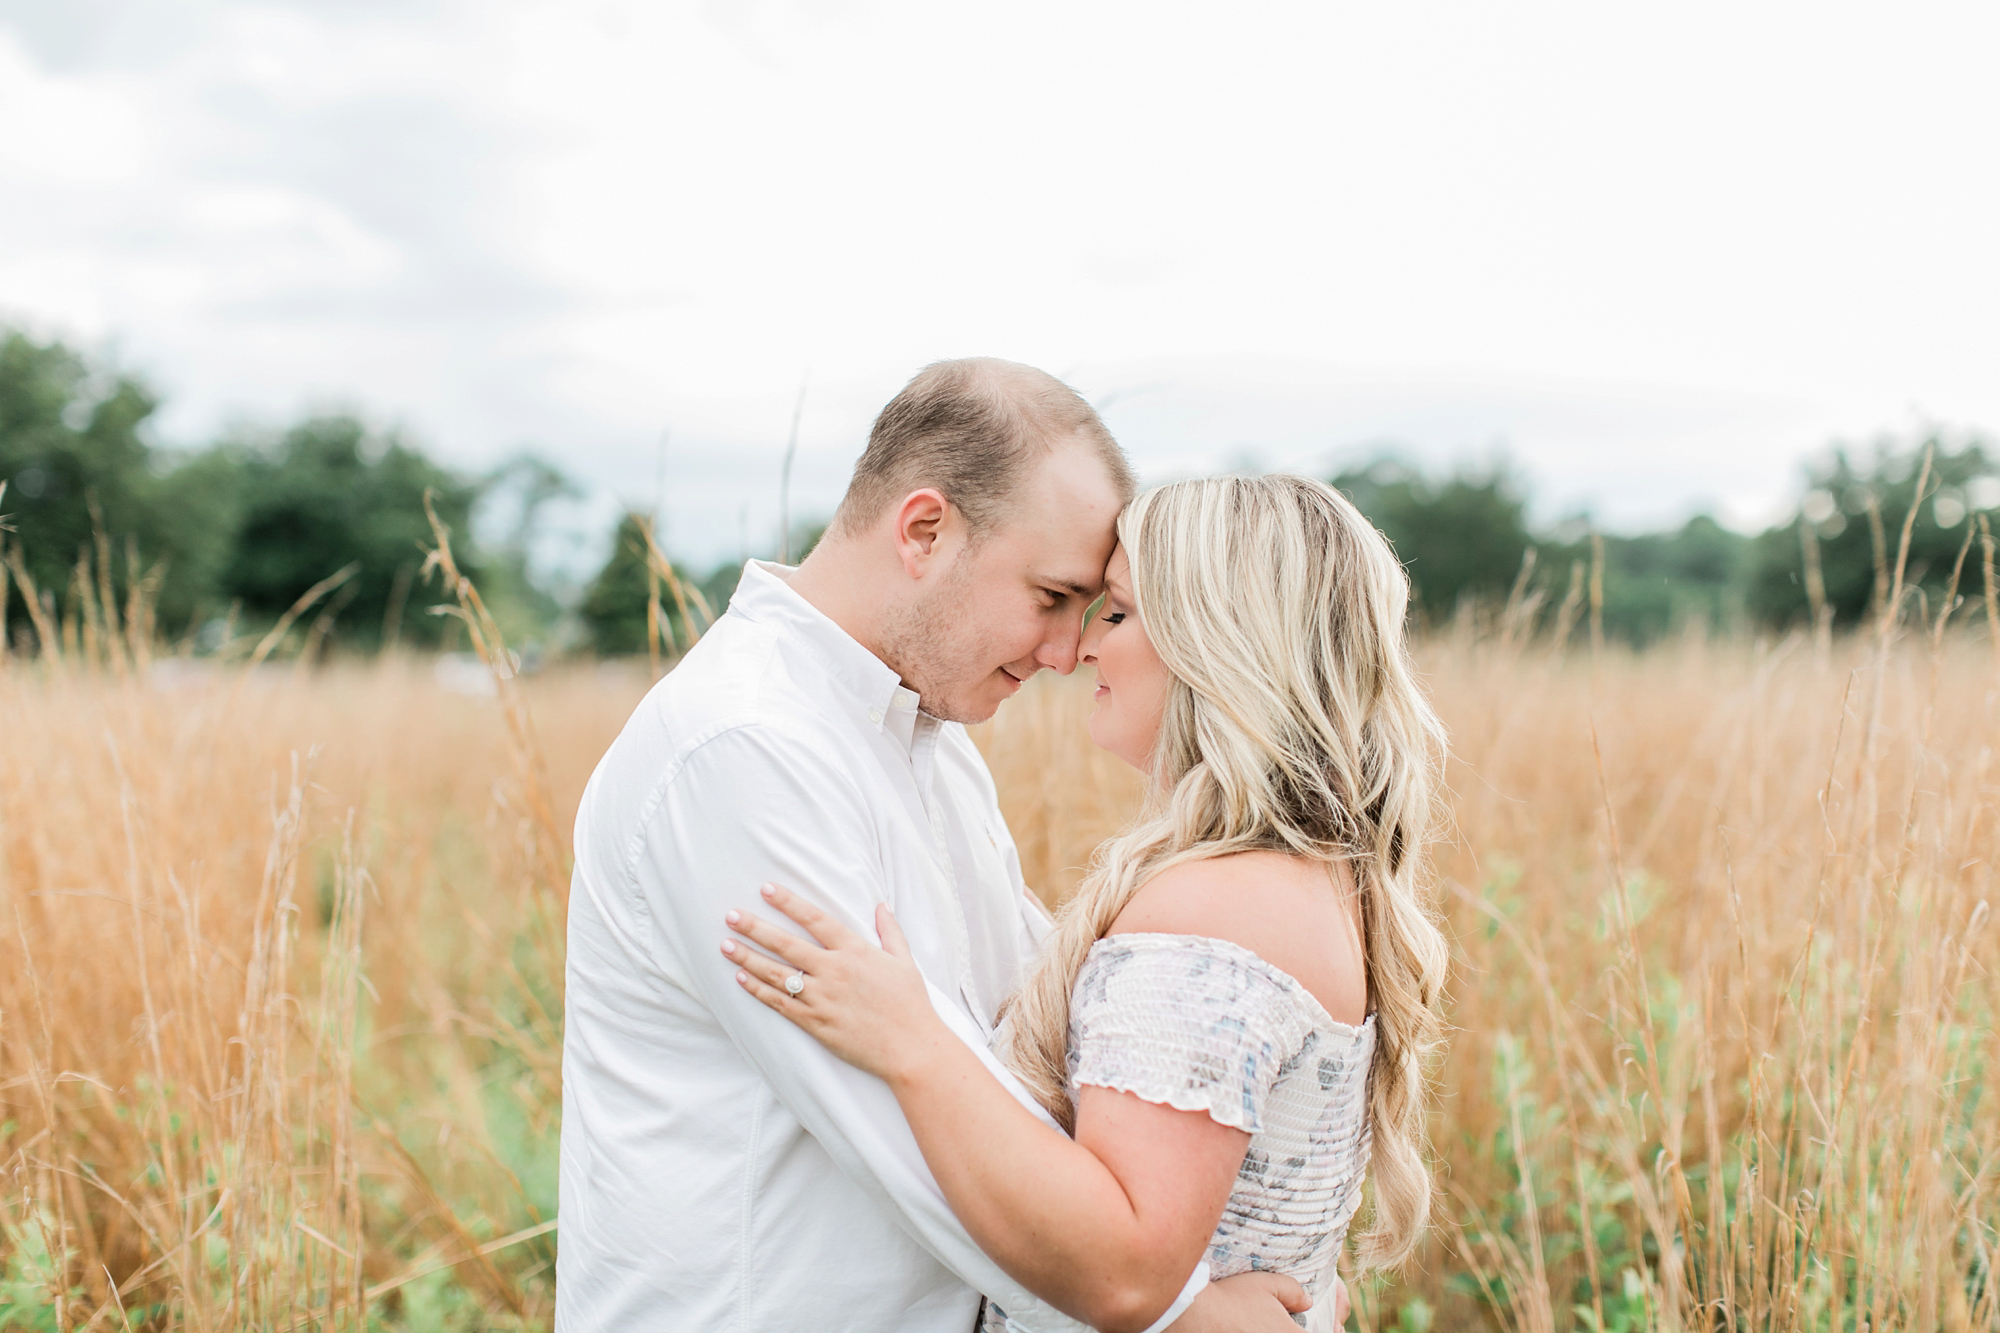 Natalie Broach Photography | Katelin and Austin Engagement Session | Jacksonville Florida Engagement Photographer | North Florida Photographer